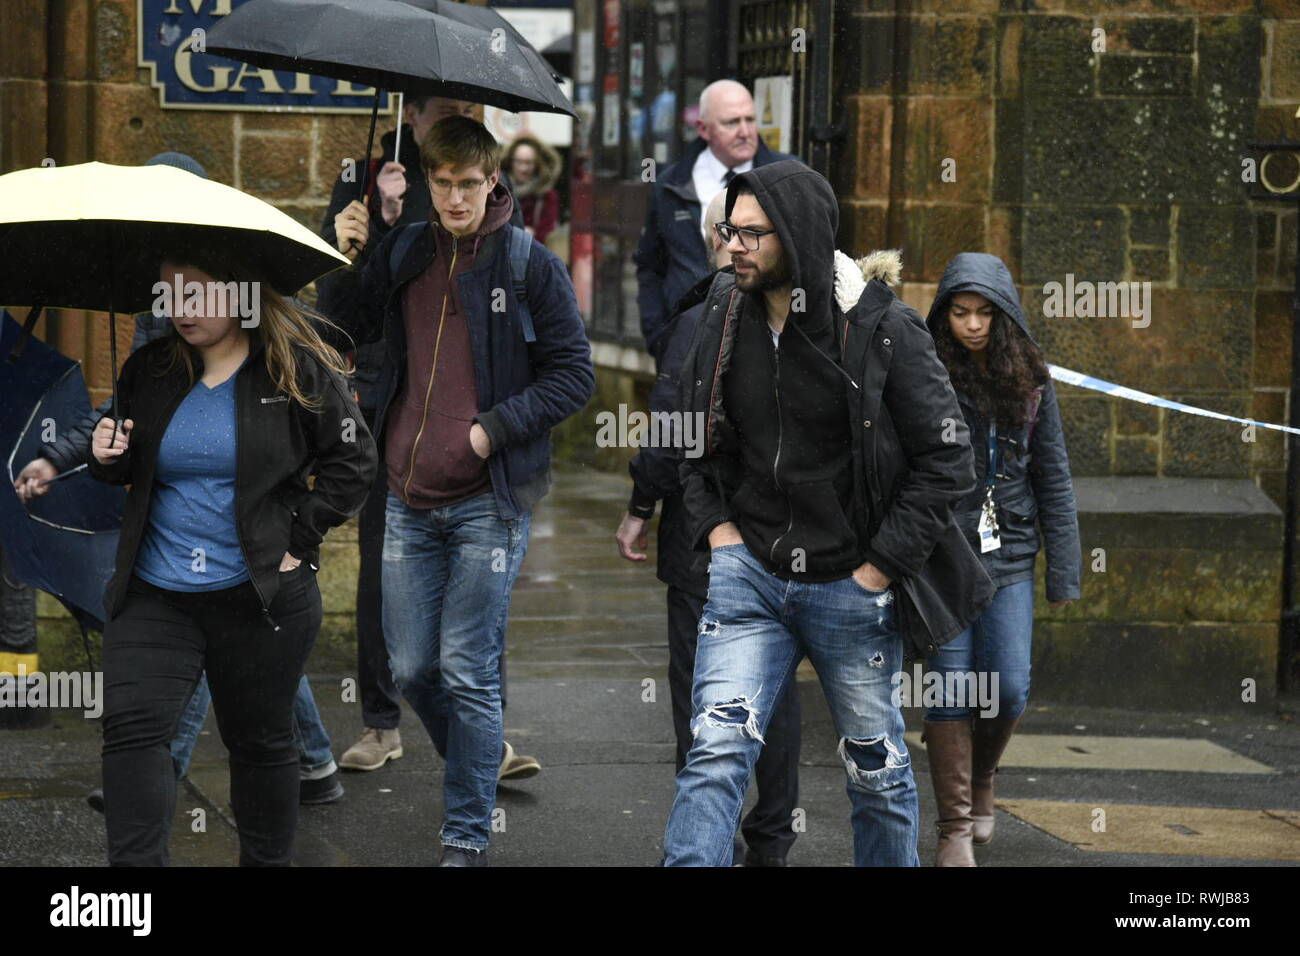 Glasgow, Glasgow City, UK. 6th Mar, 2019. Students are seen departing from the area.Police have found a suspicious package at Glasgow University in Scotland. Police and Campus Staff have shut the area down for the time being. Credit: Stewart Kirby/SOPA Images/ZUMA Wire/Alamy Live News Stock Photo